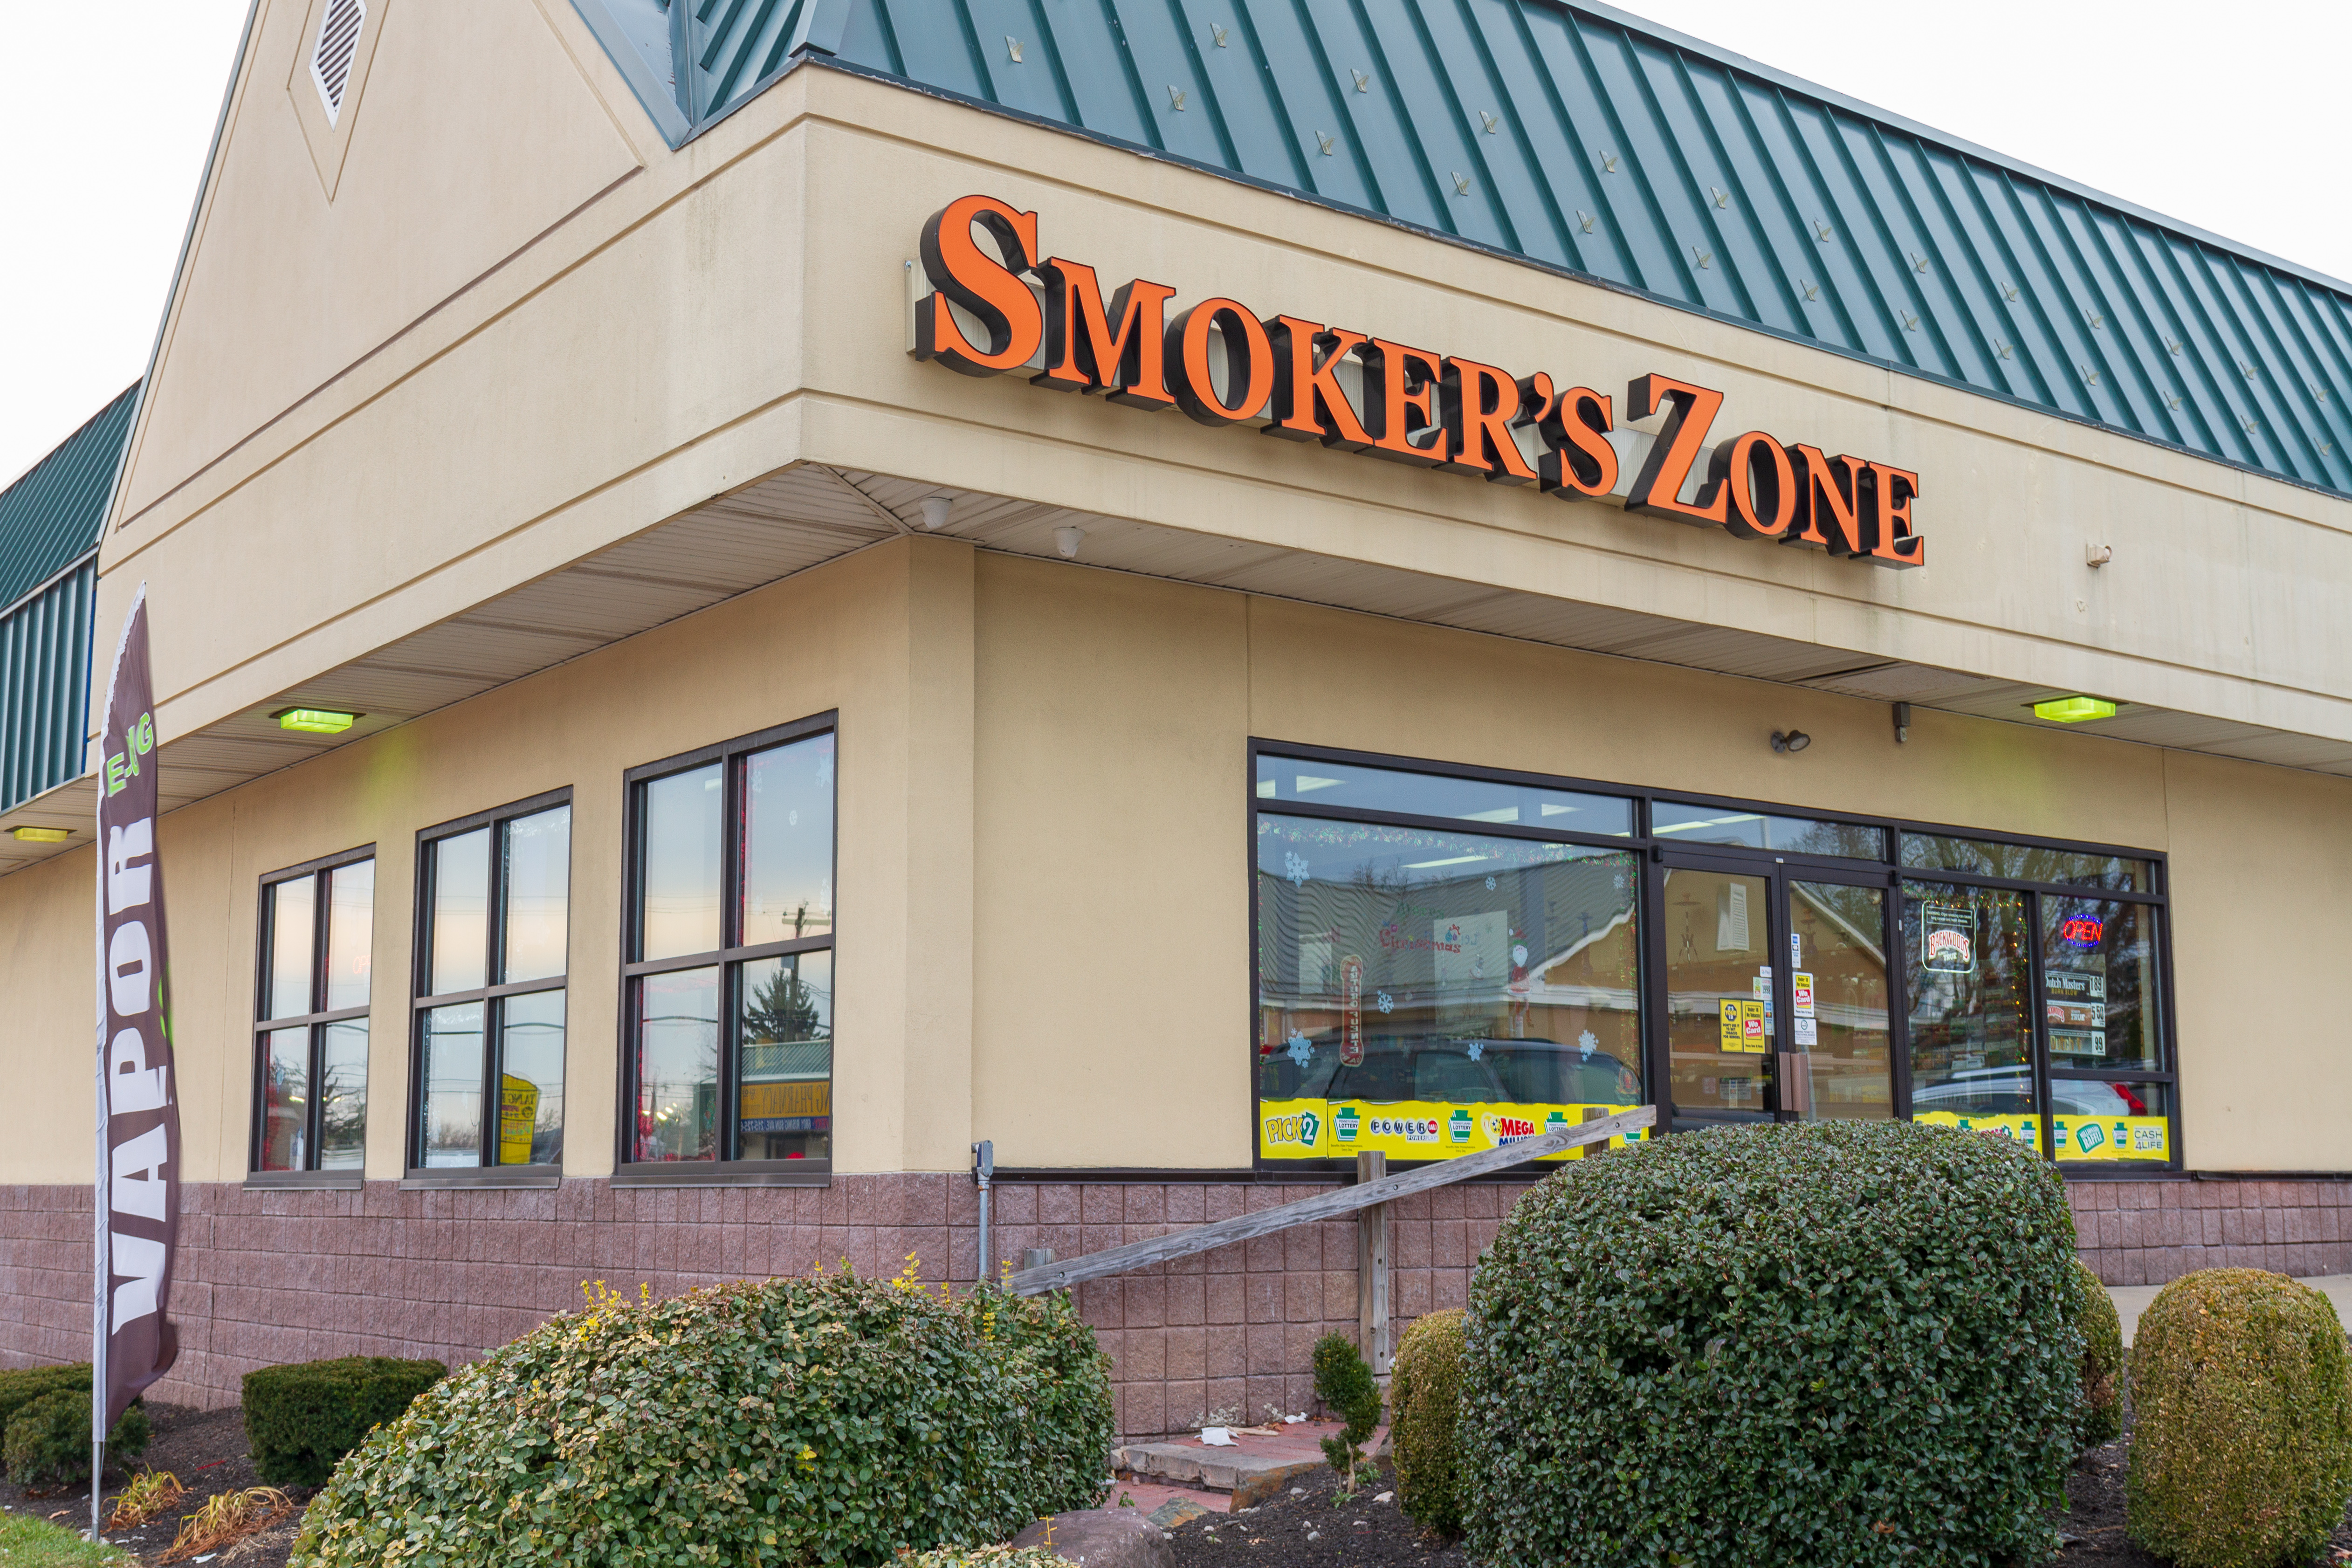 Smoker's Zone Premium Cigars Tobacco_0335